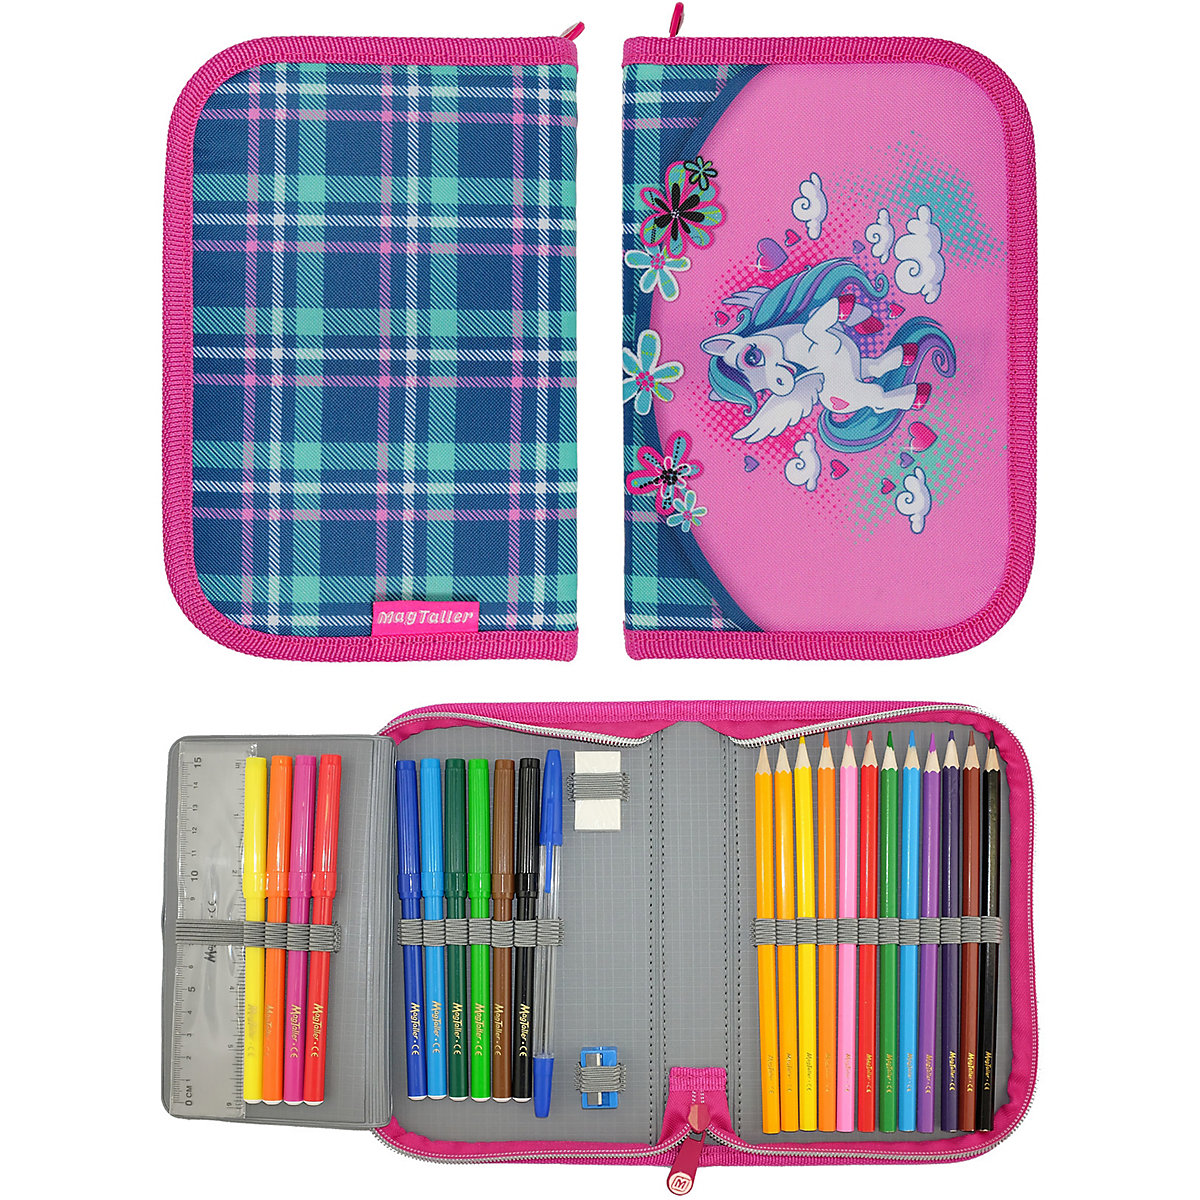 Фото - Pencil Cases MAGTALLER 11154930 school supplies stationery pencil cases for girls and boys drawing cases